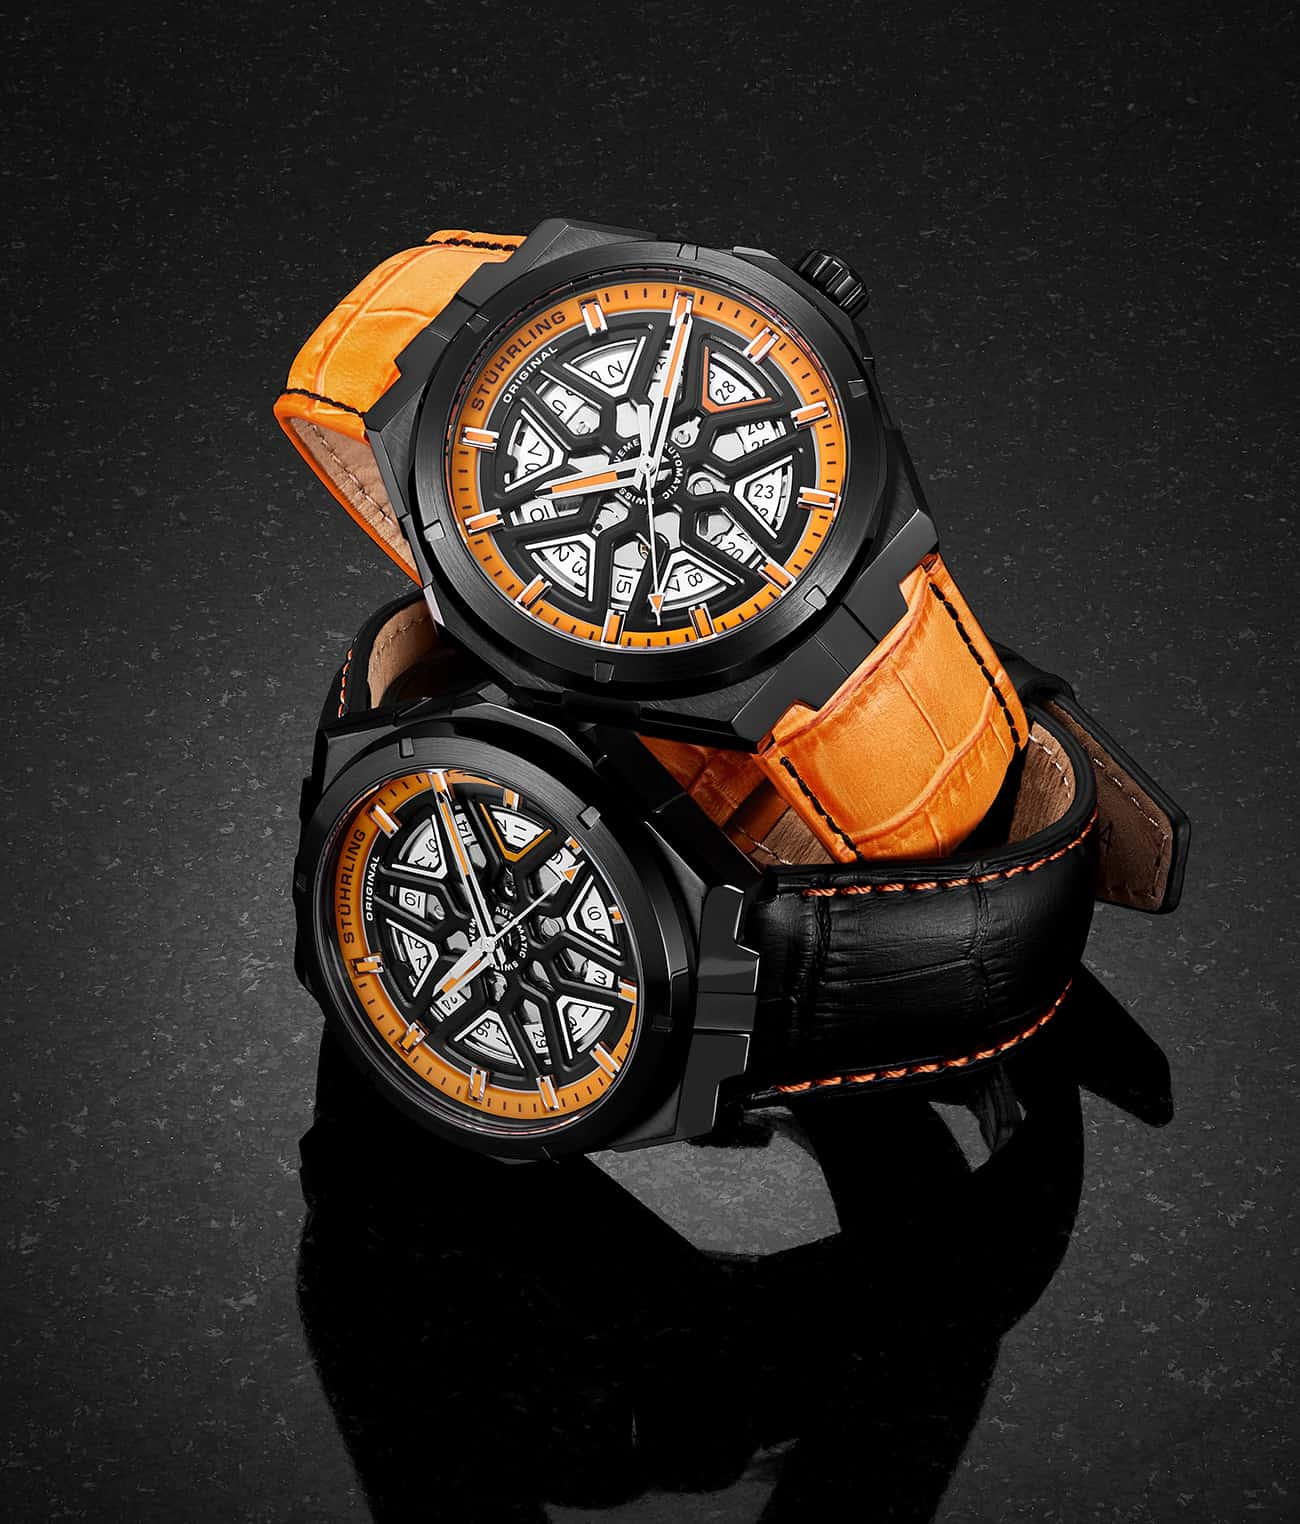 Orange Dial / Black Case / Black Band